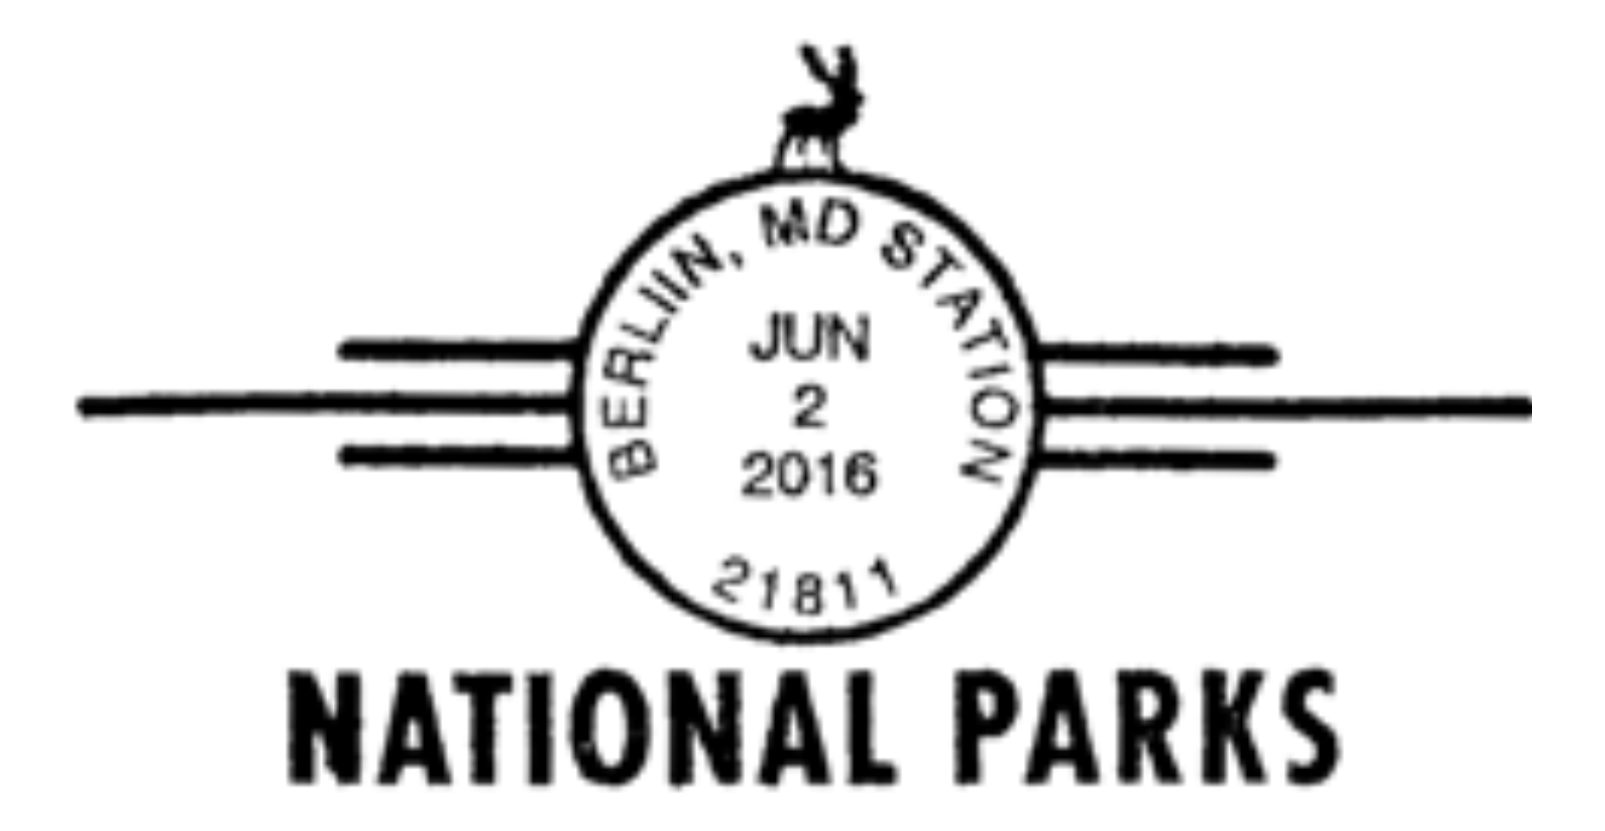 National Parks (sixteen different postmarks) — 2016-06-02